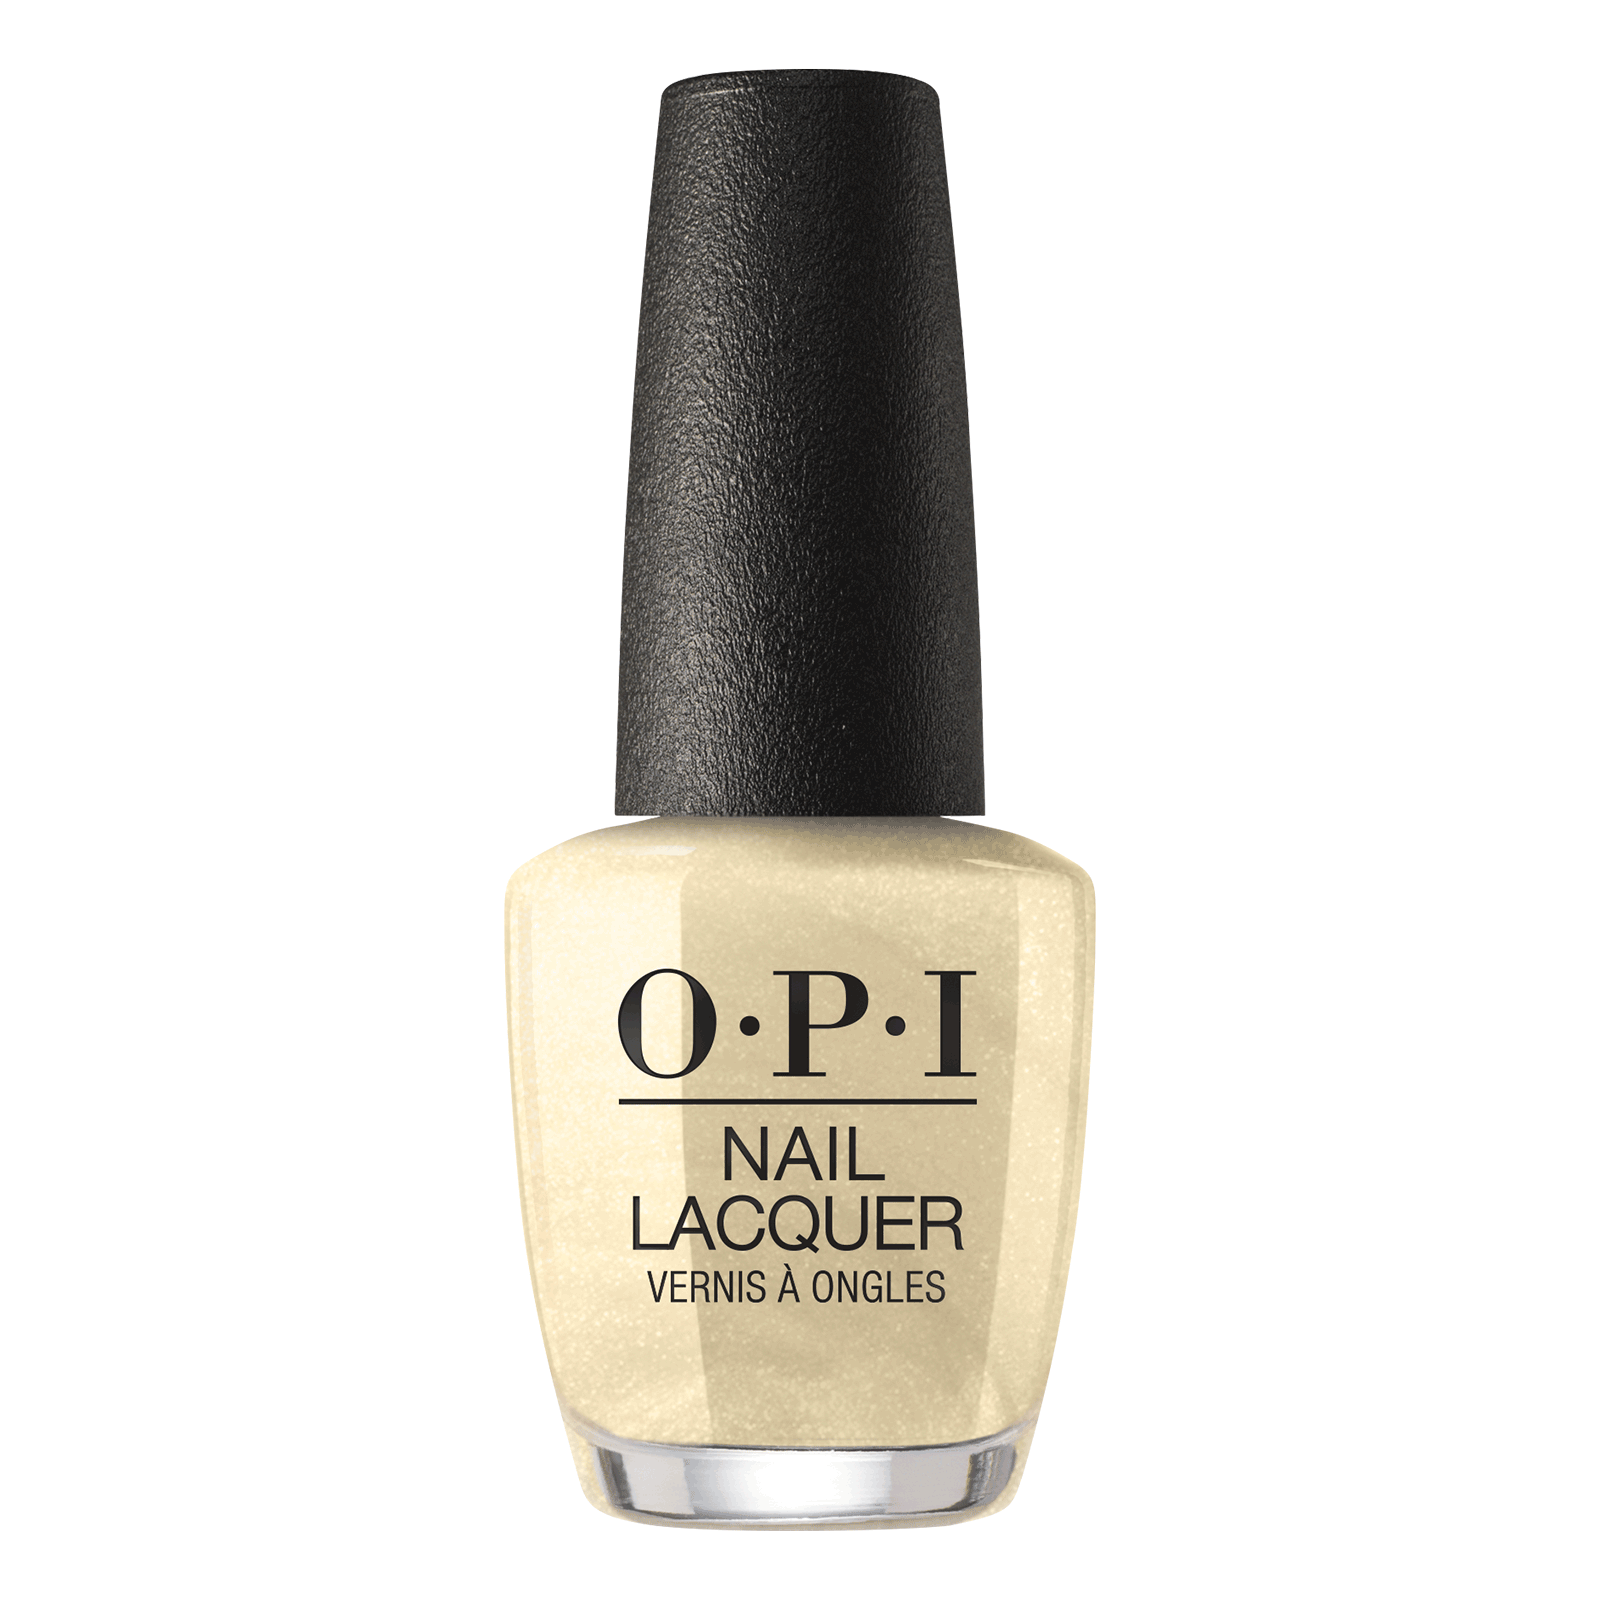 Nail Lacquer - Gift Of Gold Never Gets Old